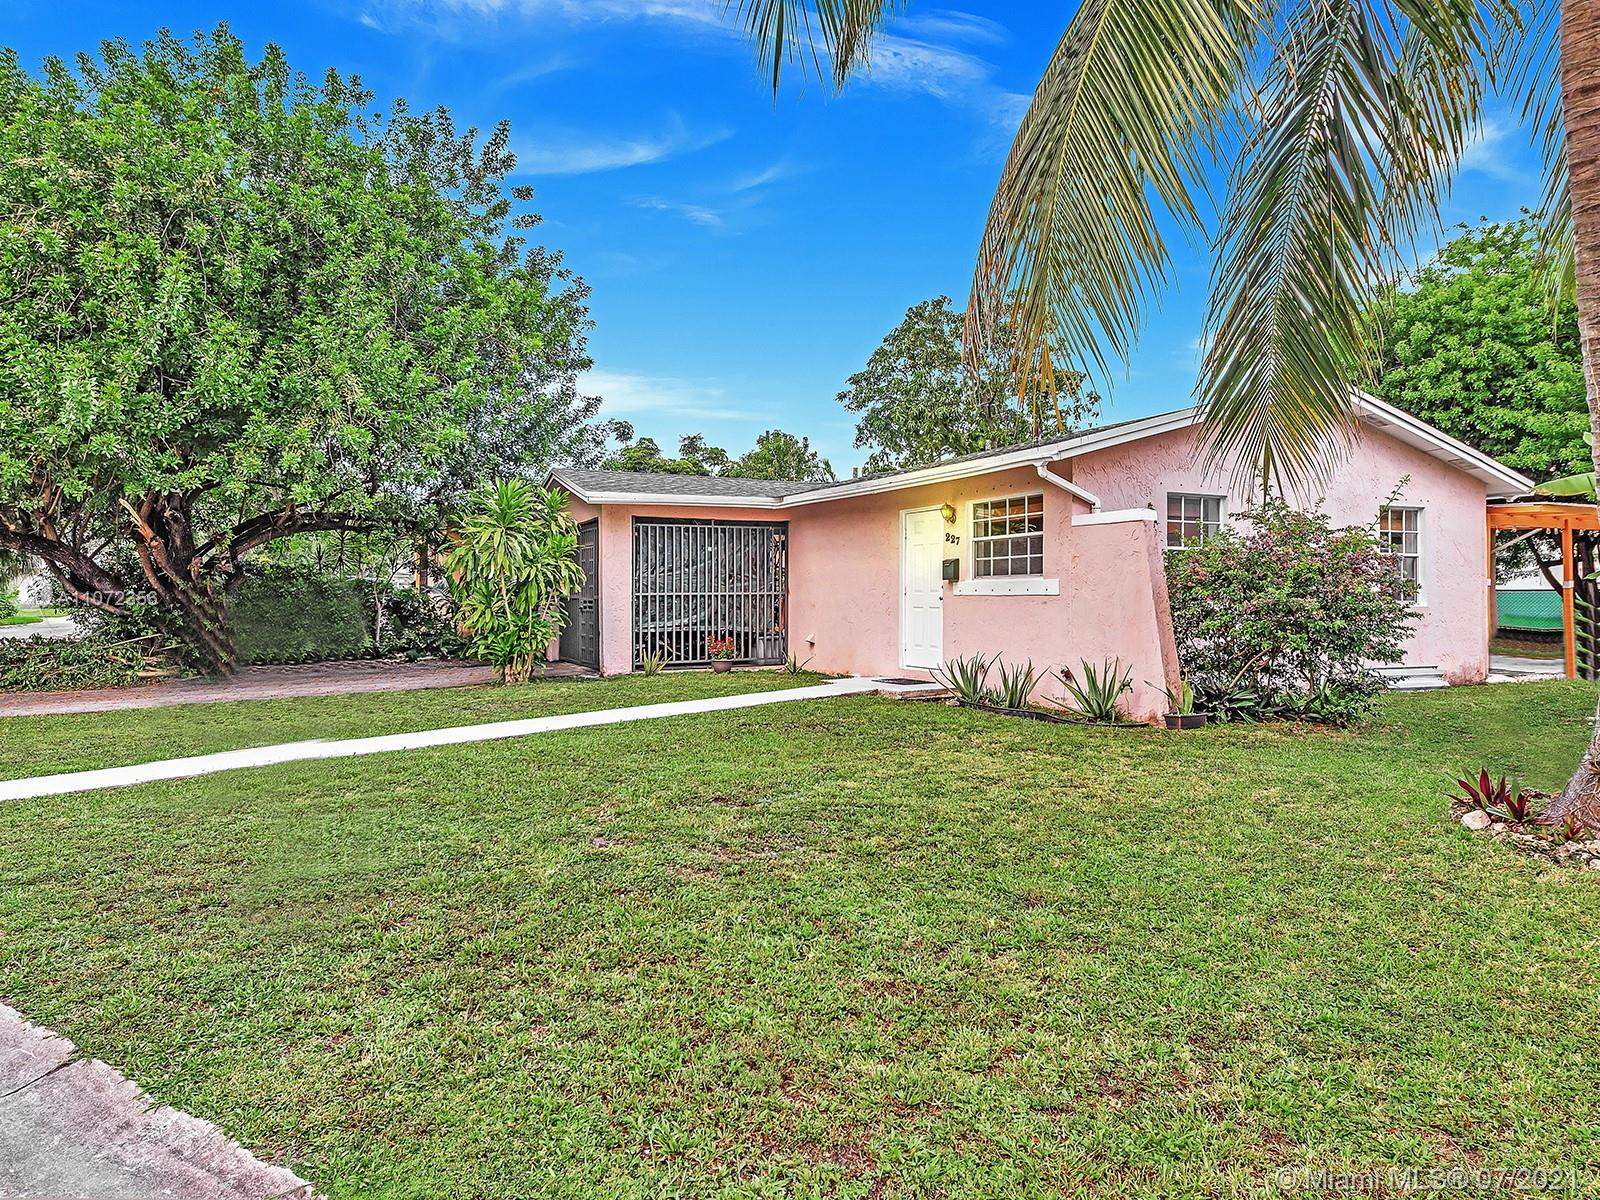 A wonderful Single Family home in Coral Gables city and Coconut Groove Proper. Home is located within walking distance to the prestigious Shops at Merrick Park, Downtown Coconut Grove and the University of Miami. This is an excellent opportunity to live in a great city at an arms length of all the shopping destinations you could think of! Home is perfectly nestled in between two parks, an A+ rated elementary school, and the famous South-Dixie Highway (Route 1). Join this quiet community with an easy commute to downtown Miami...Home features a perfectly sized master bedroom w/ walk in closet, big laundry room, updated kitchen, French doors leading to a covered terrace from the living room and cute boutique yard. Come by and check it out today!!!....A/C and Roof both from 2015.....